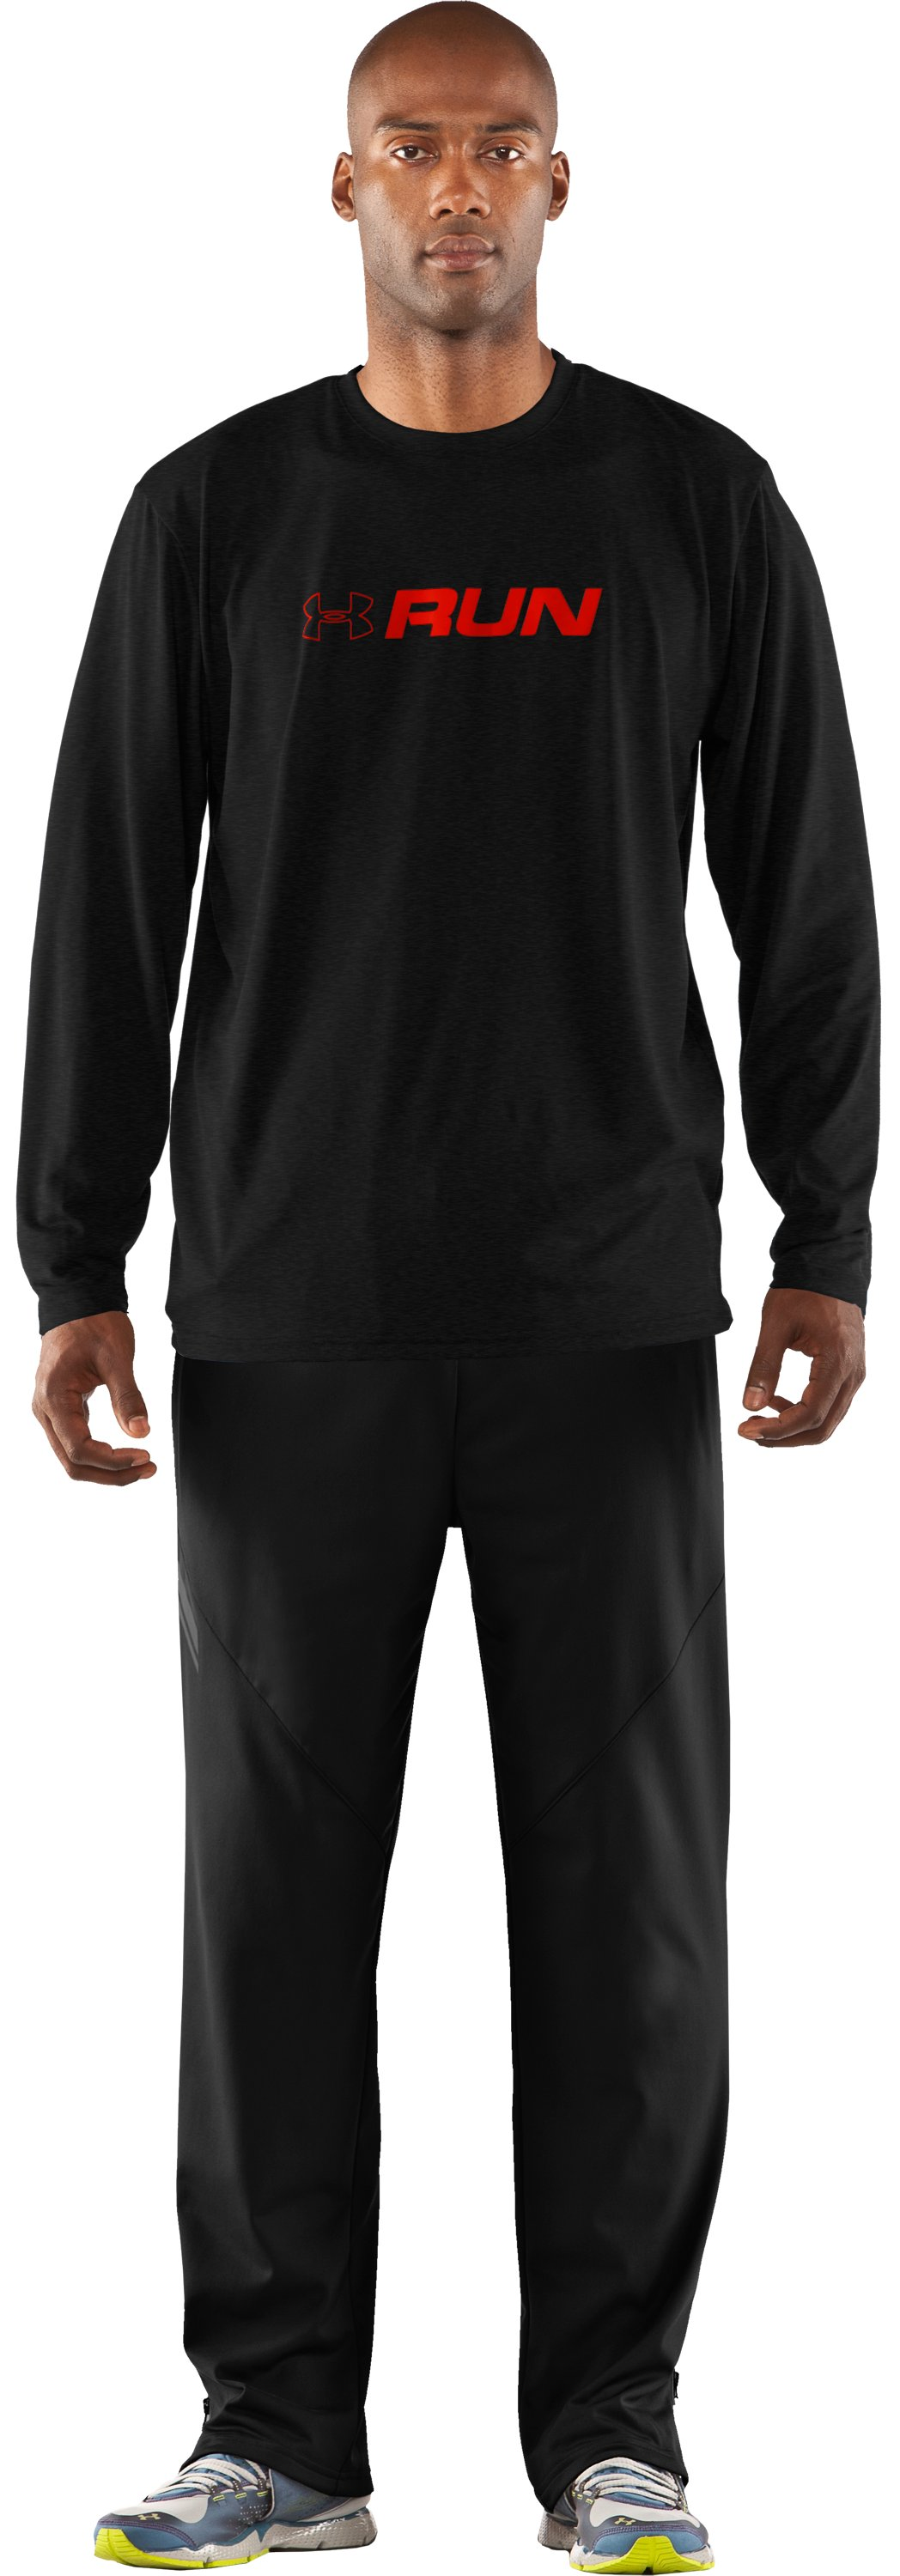 Men's UA Run Long Sleeve Graphic T-Shirt, Asphalt Heather